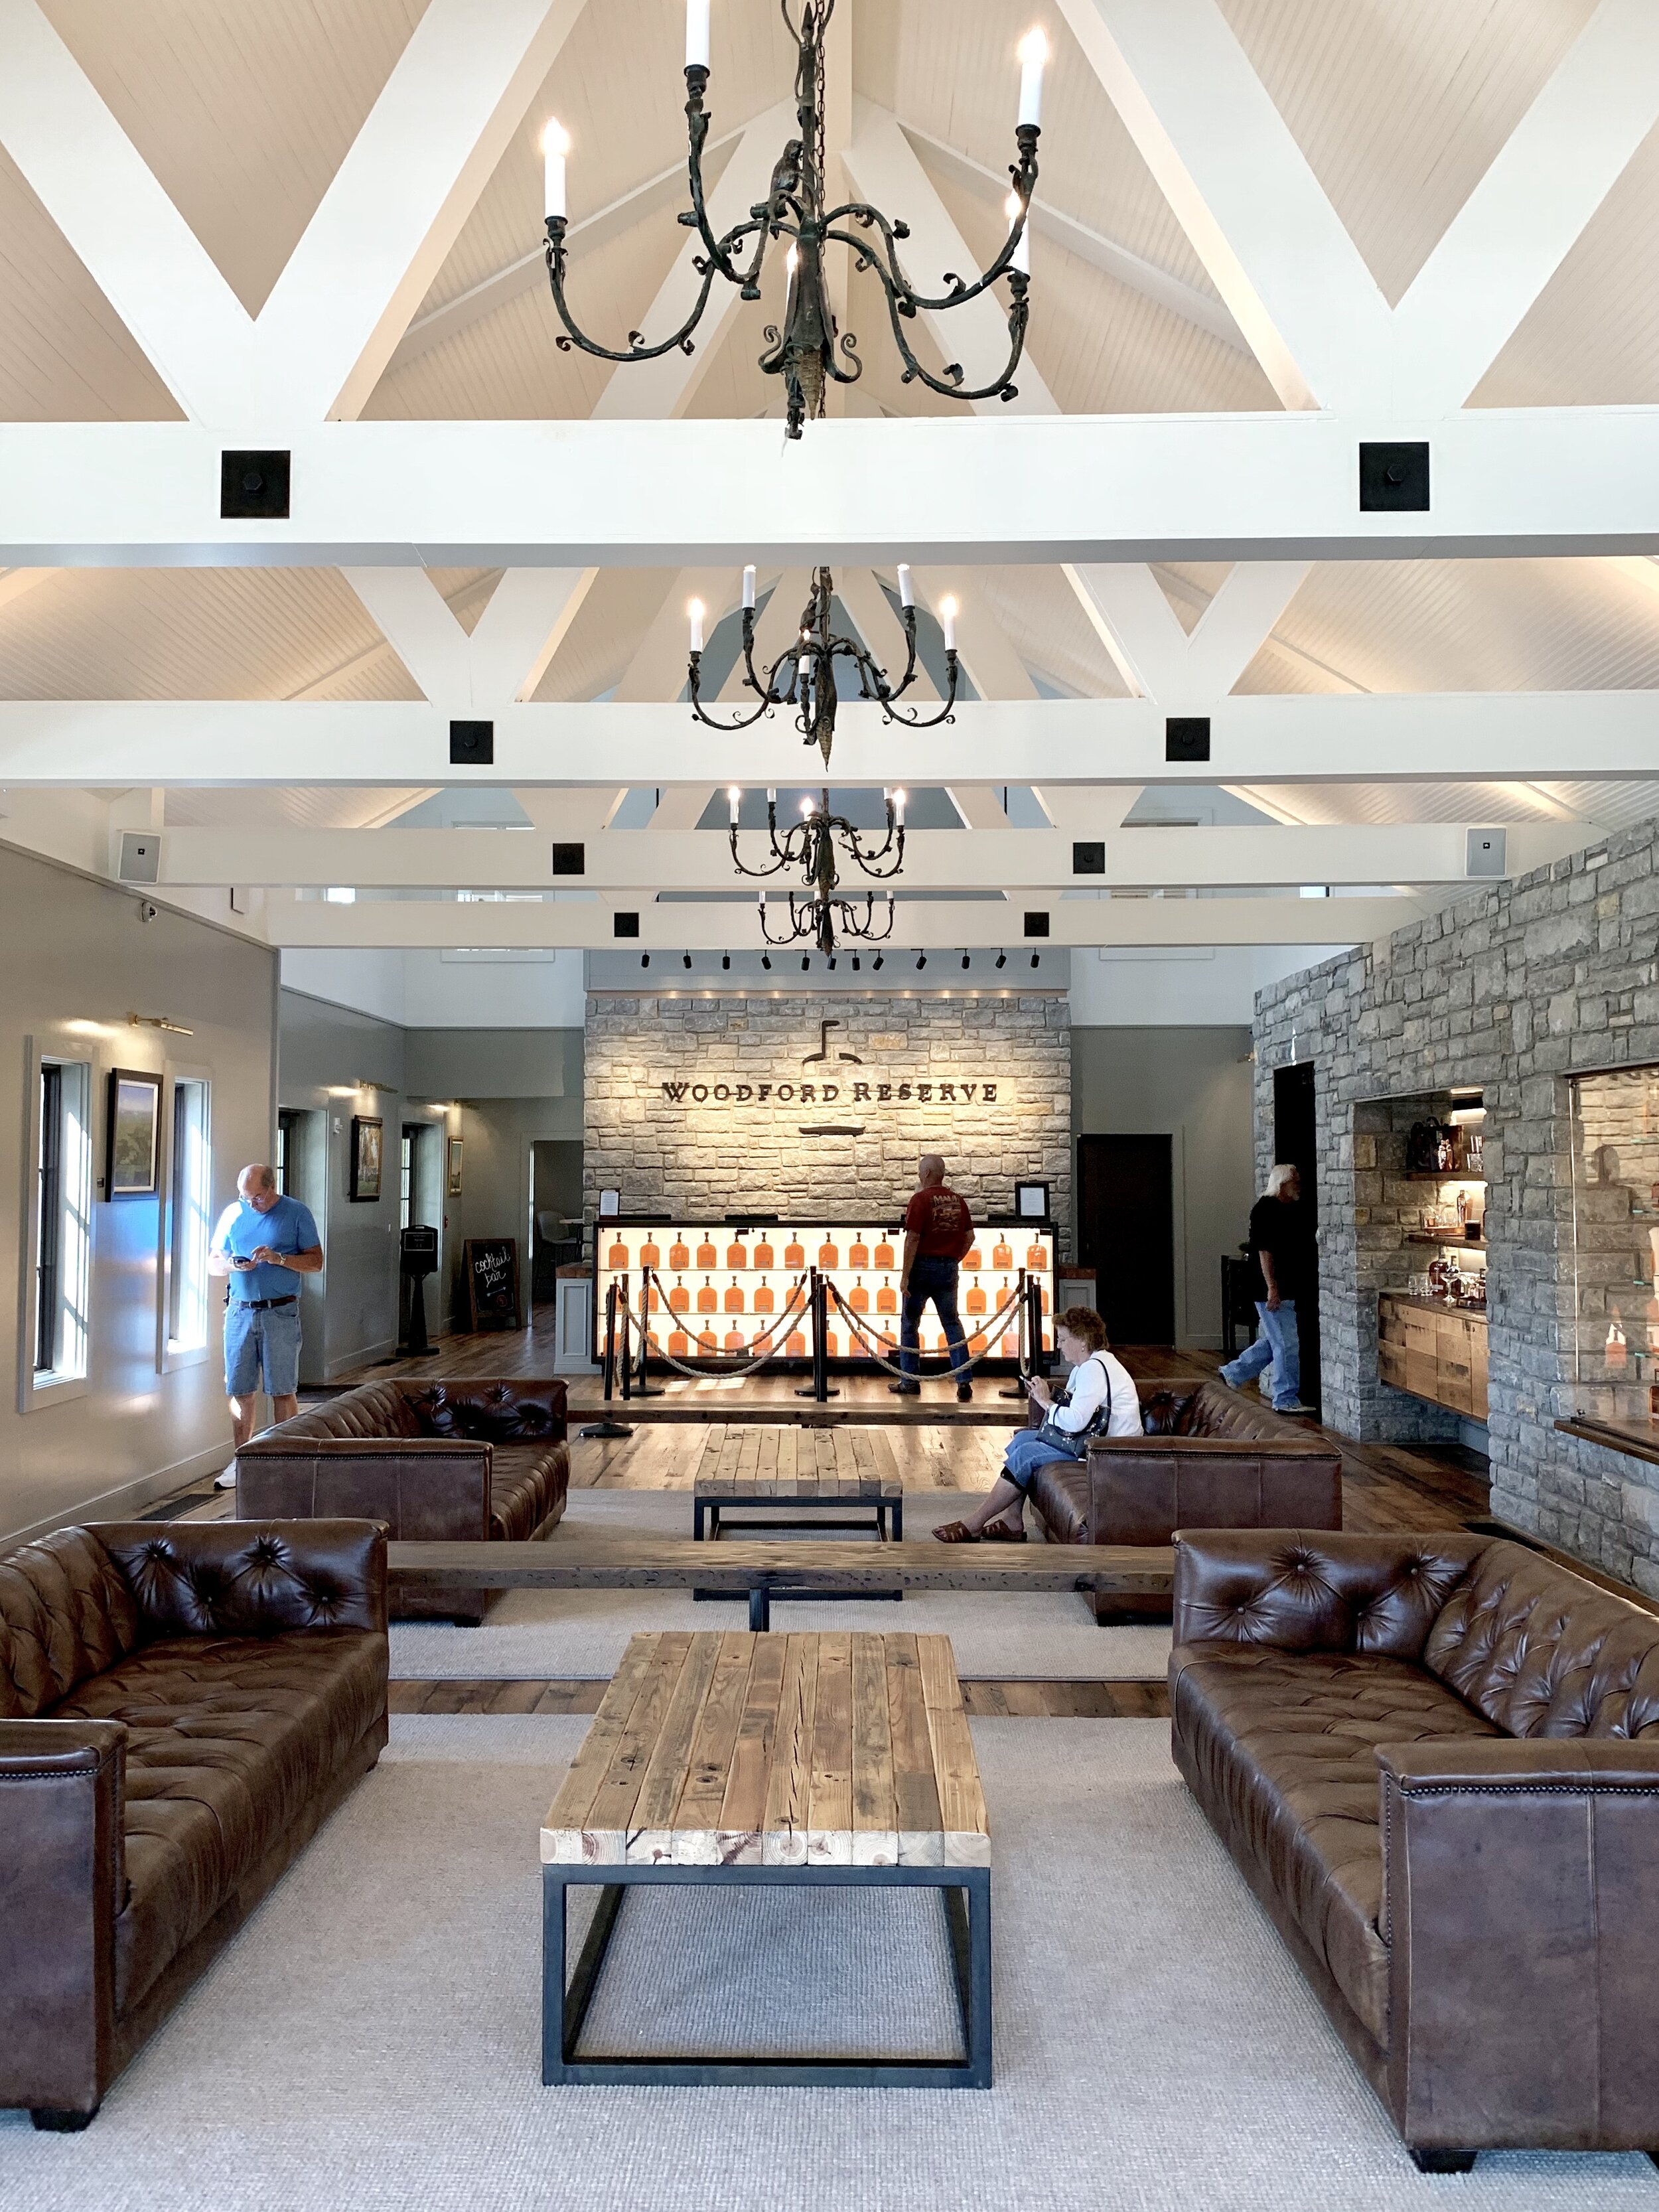 Woodford Reserve has a stunning property!